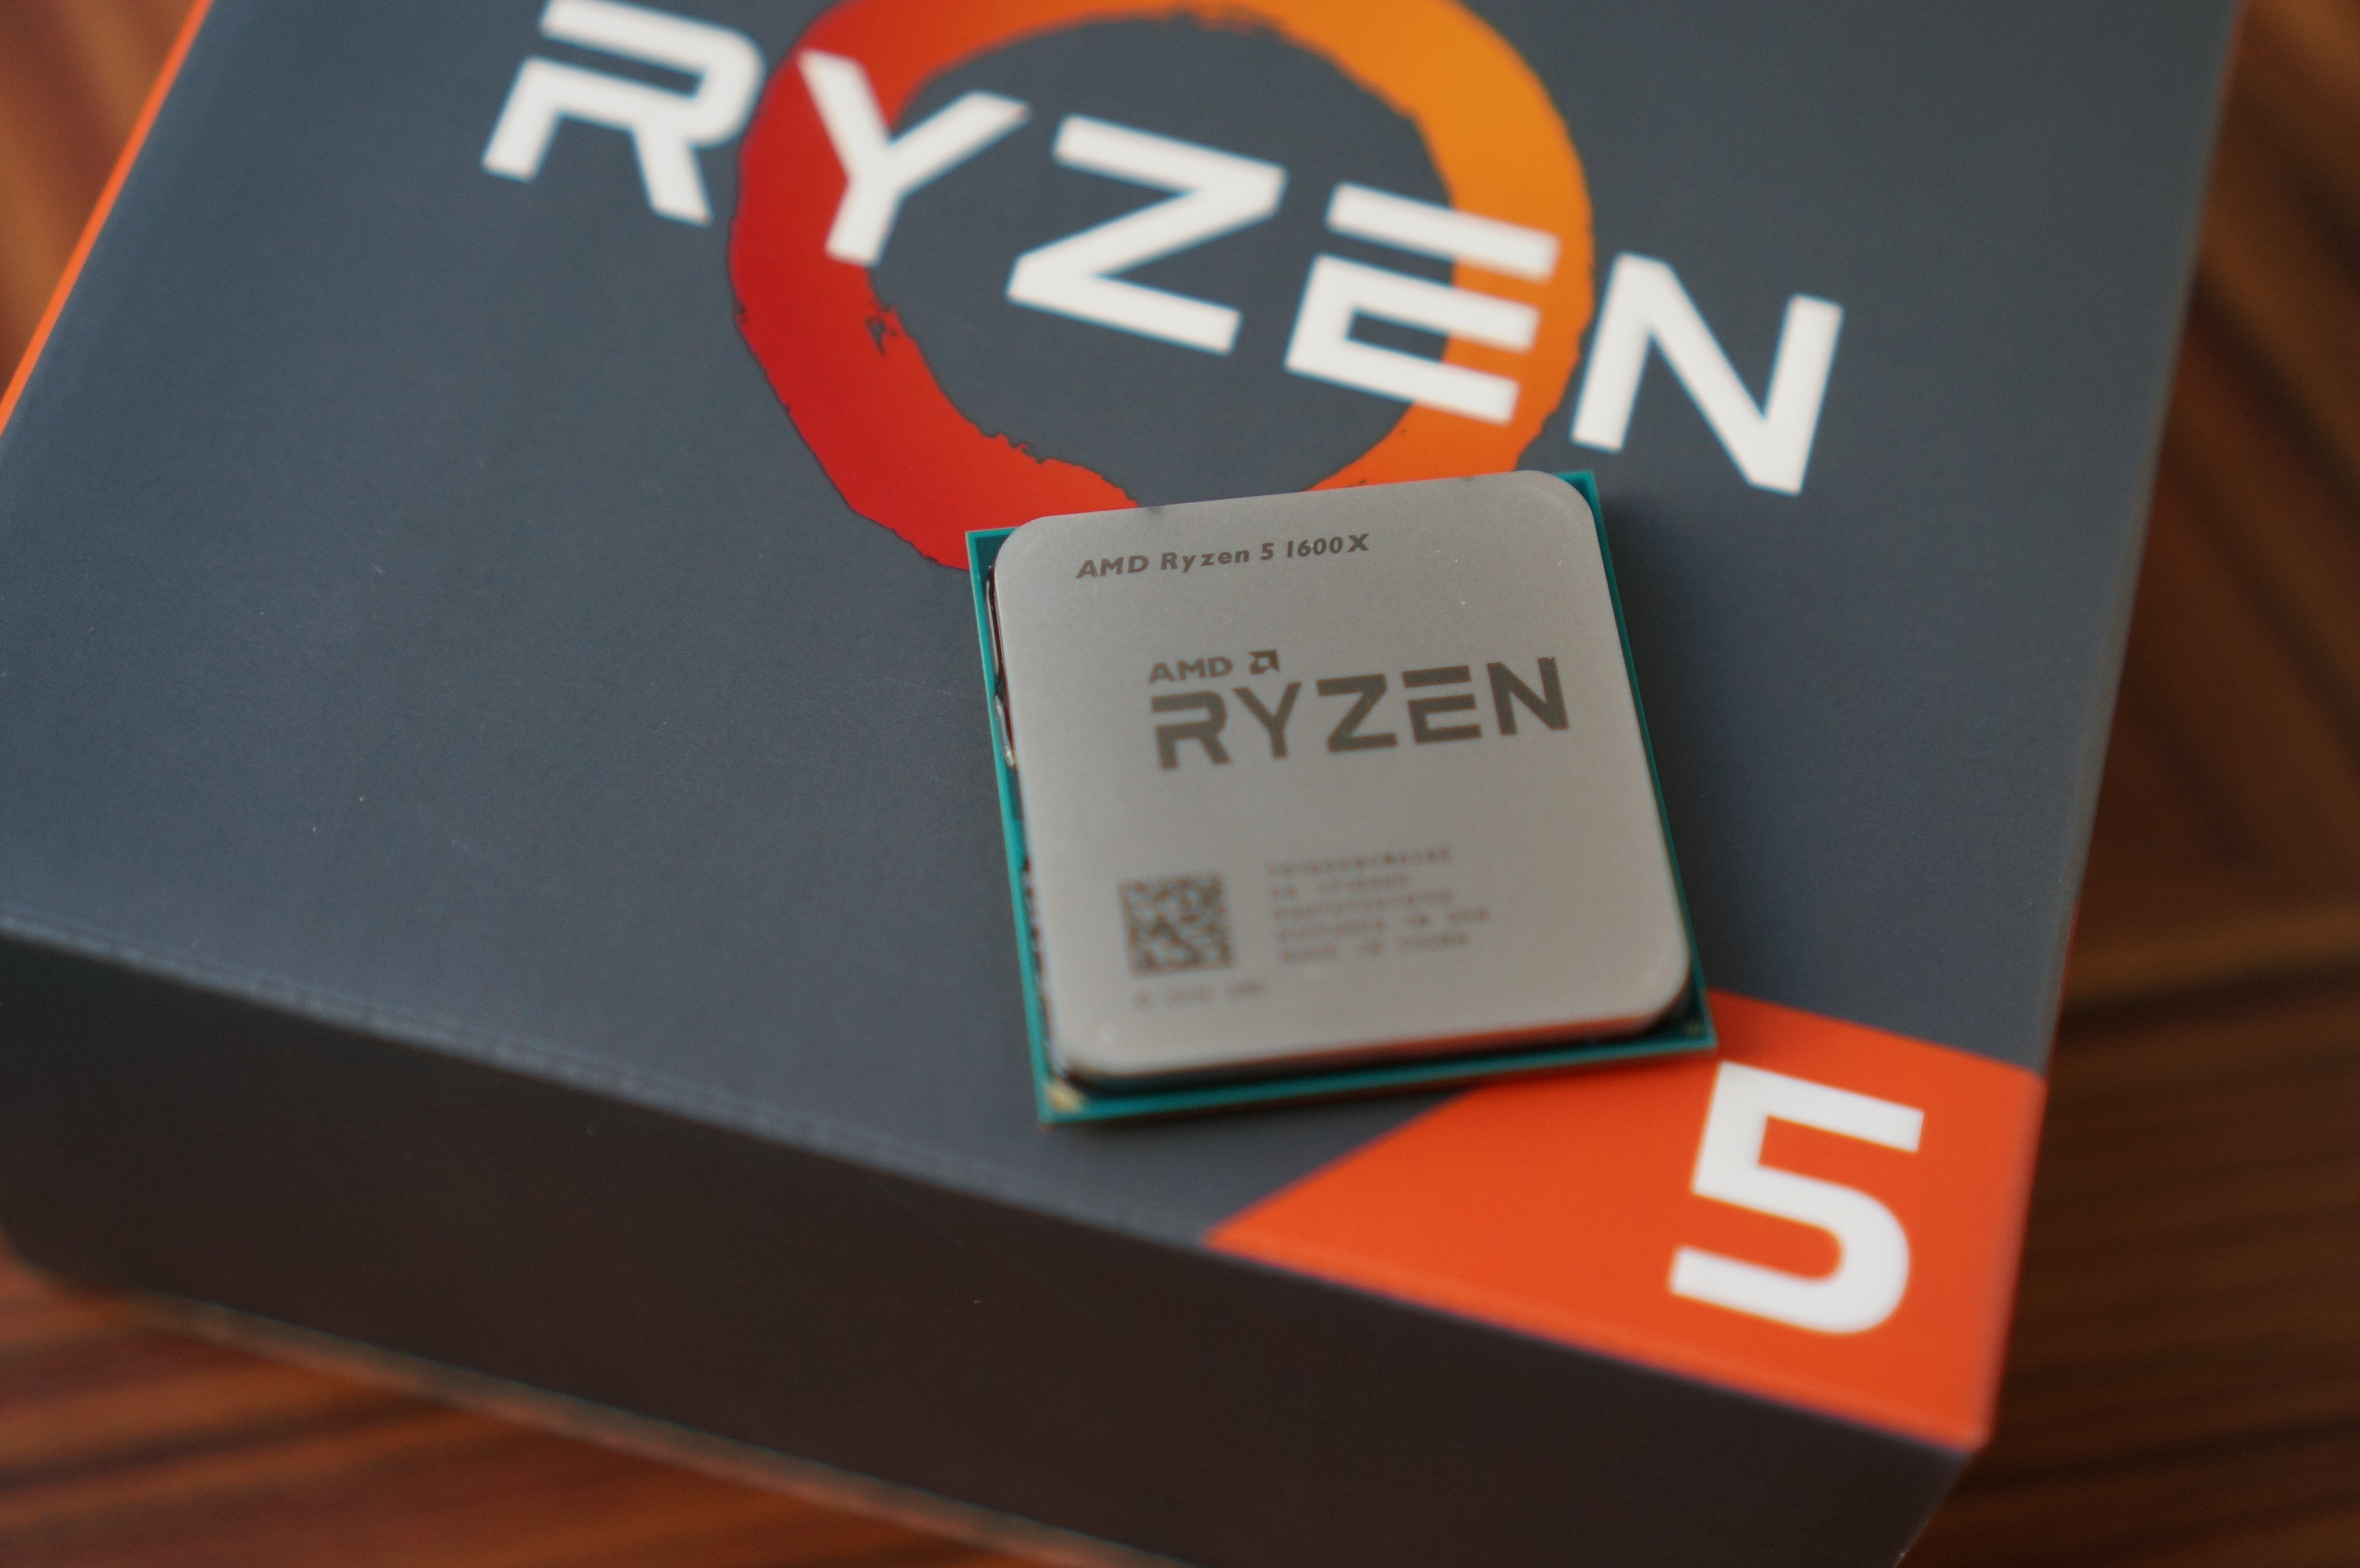 AMD Ryzen CPUs explained: Specs, benchmarks, price, reviews, and